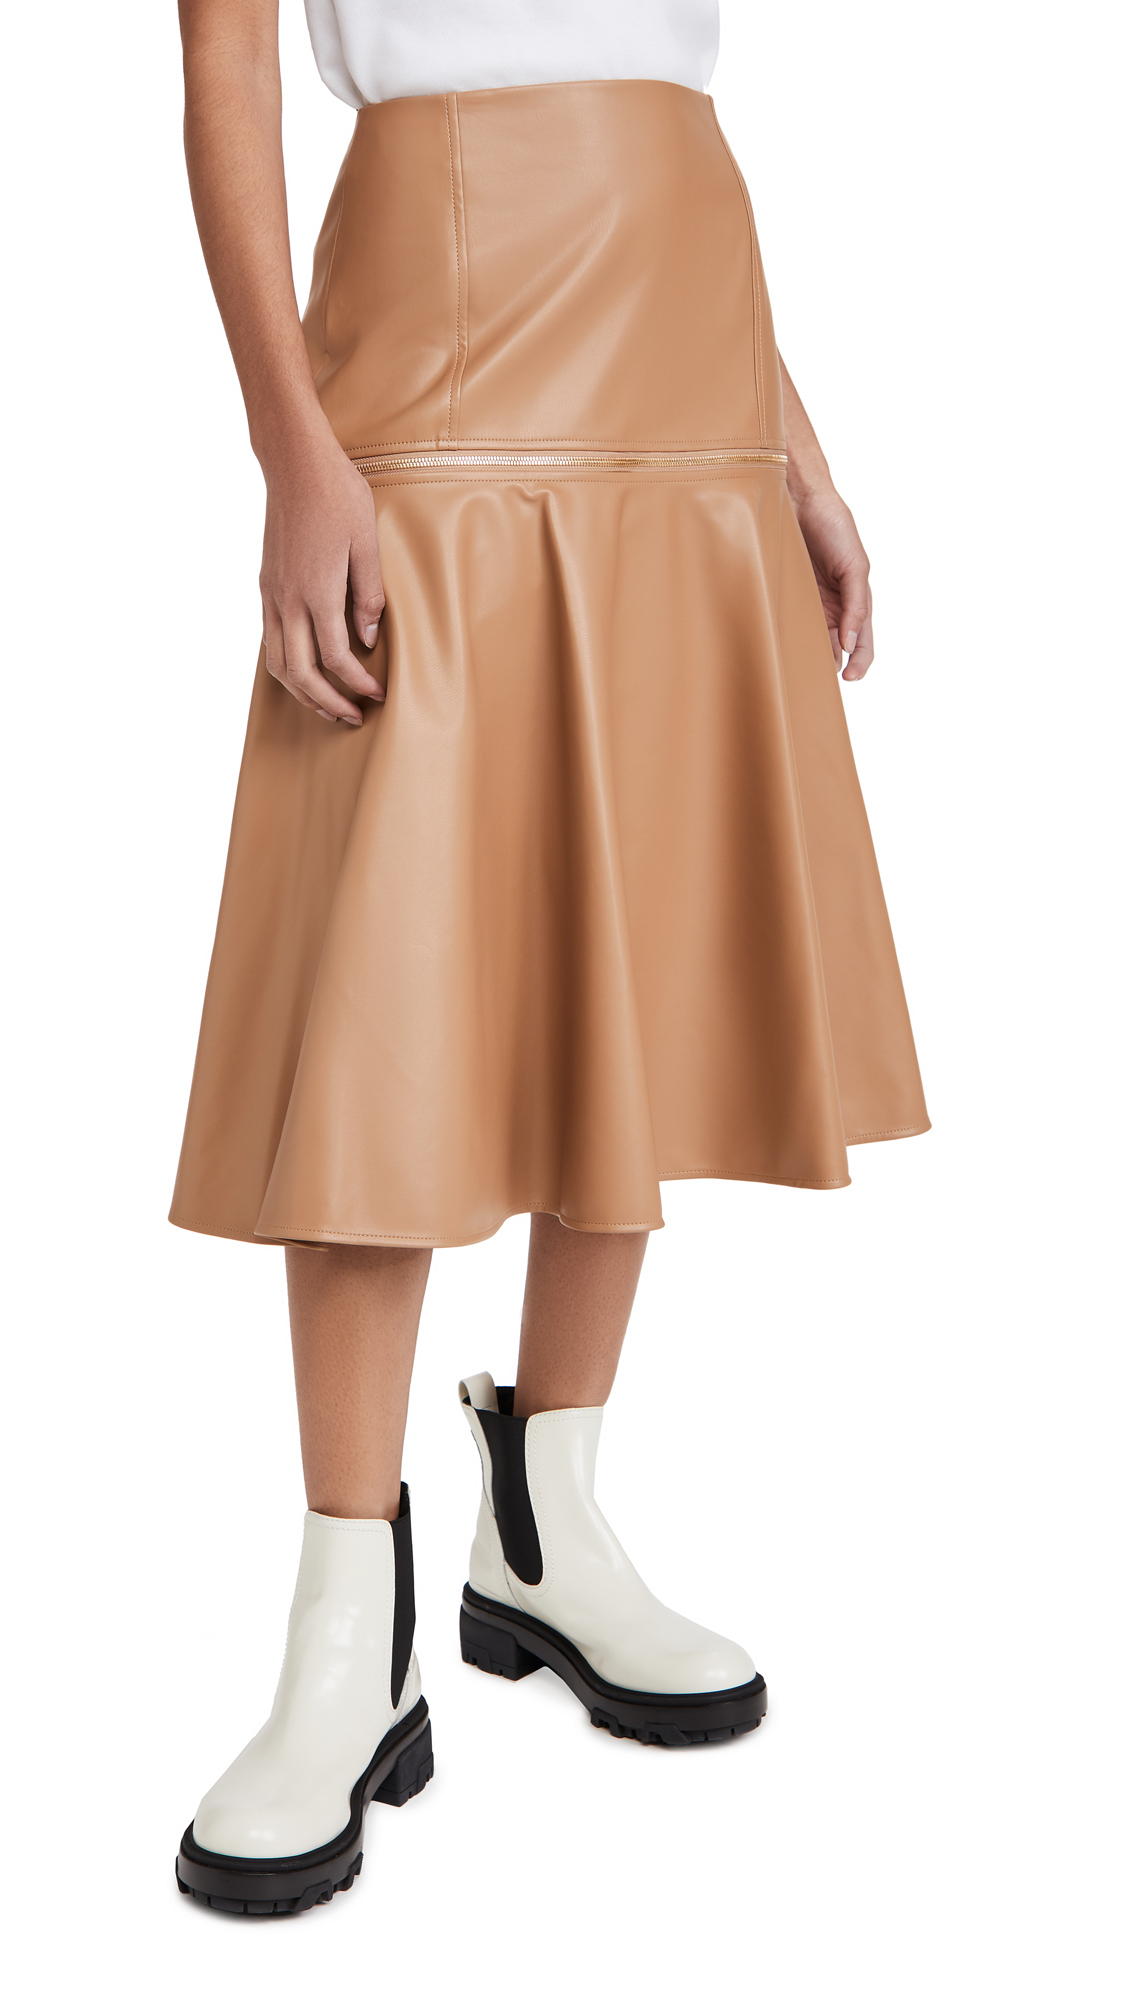 Adeam Faux Leather Zip Skirt